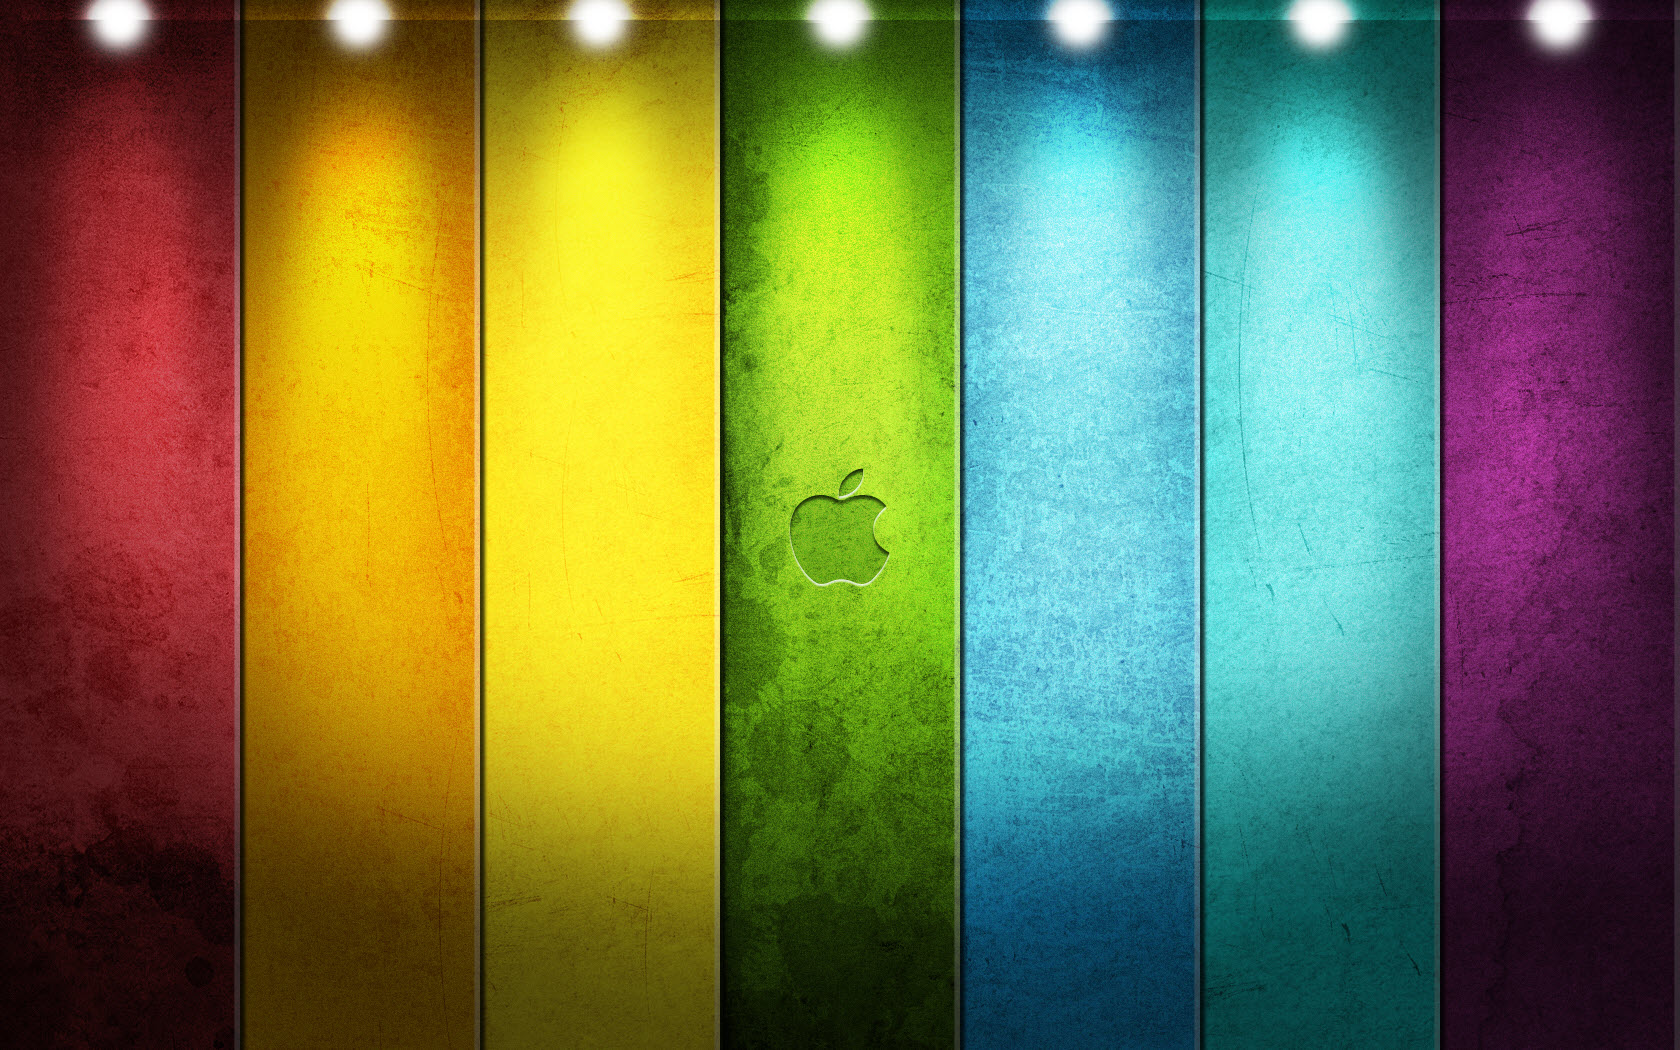 Apple Logo Wallpapers HD rainbow dotted lights